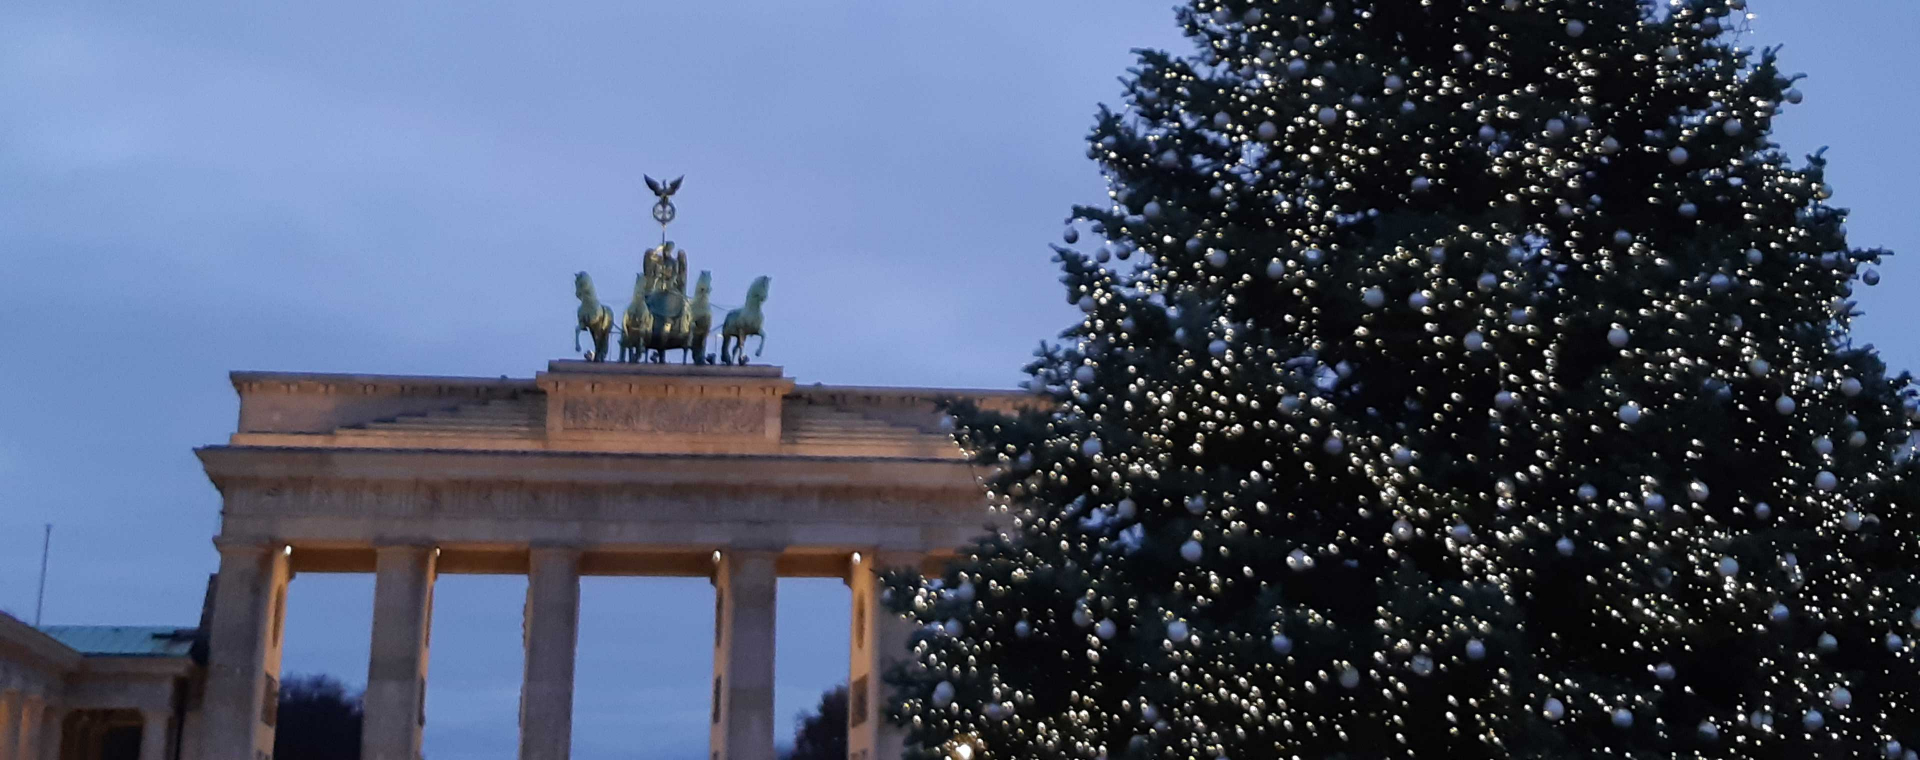 Christmas tree on Pariser Platz with the illuminated Brandenburg Gate in the background